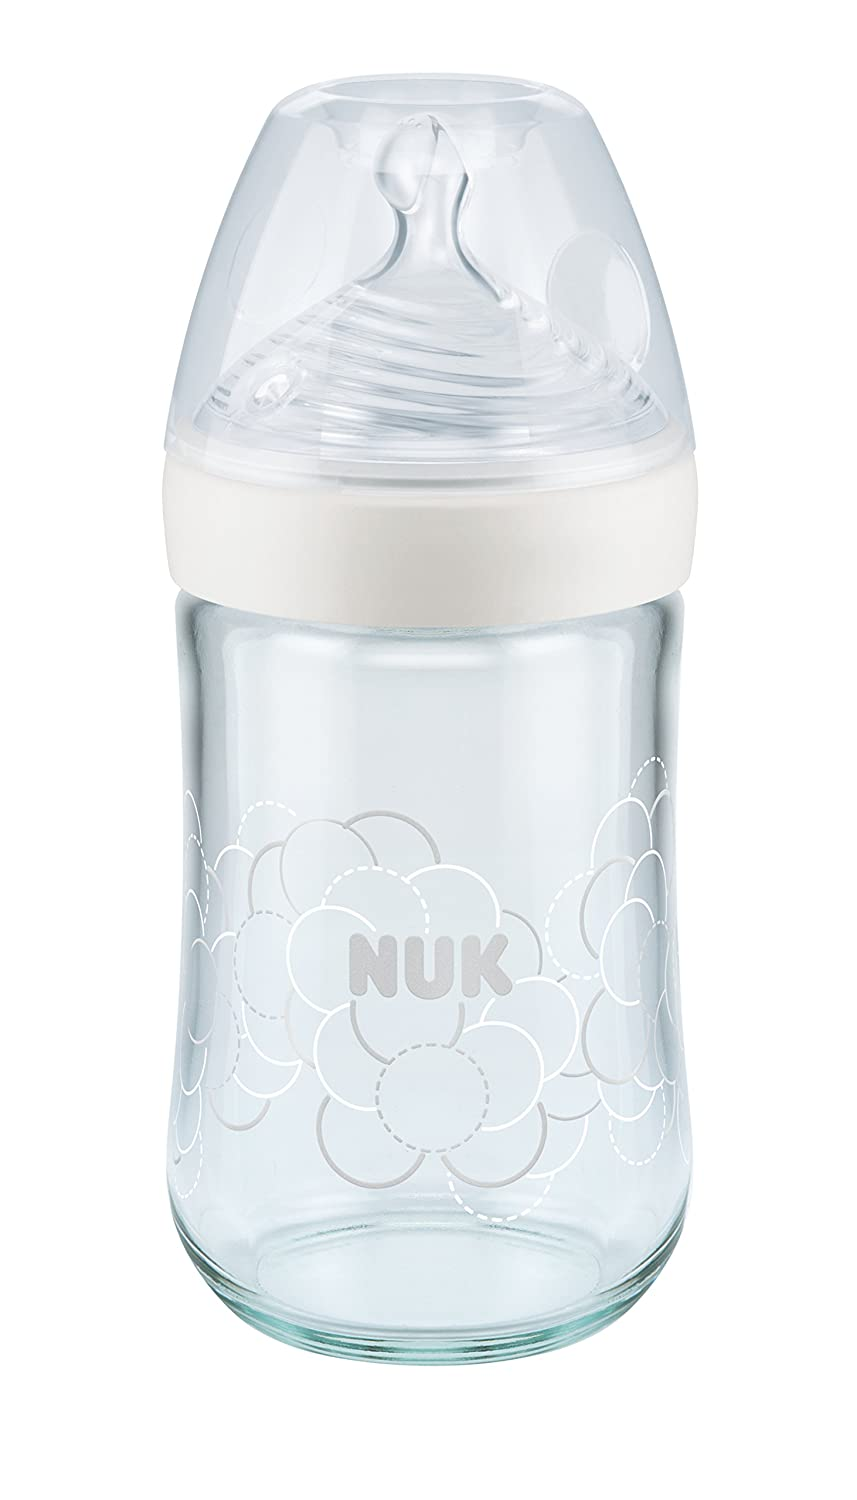 NUK Nature Sense Glass Bottle with Silicone 0-6 Months, M (6 Tiny Openings for Formula), Holds 240 ml White